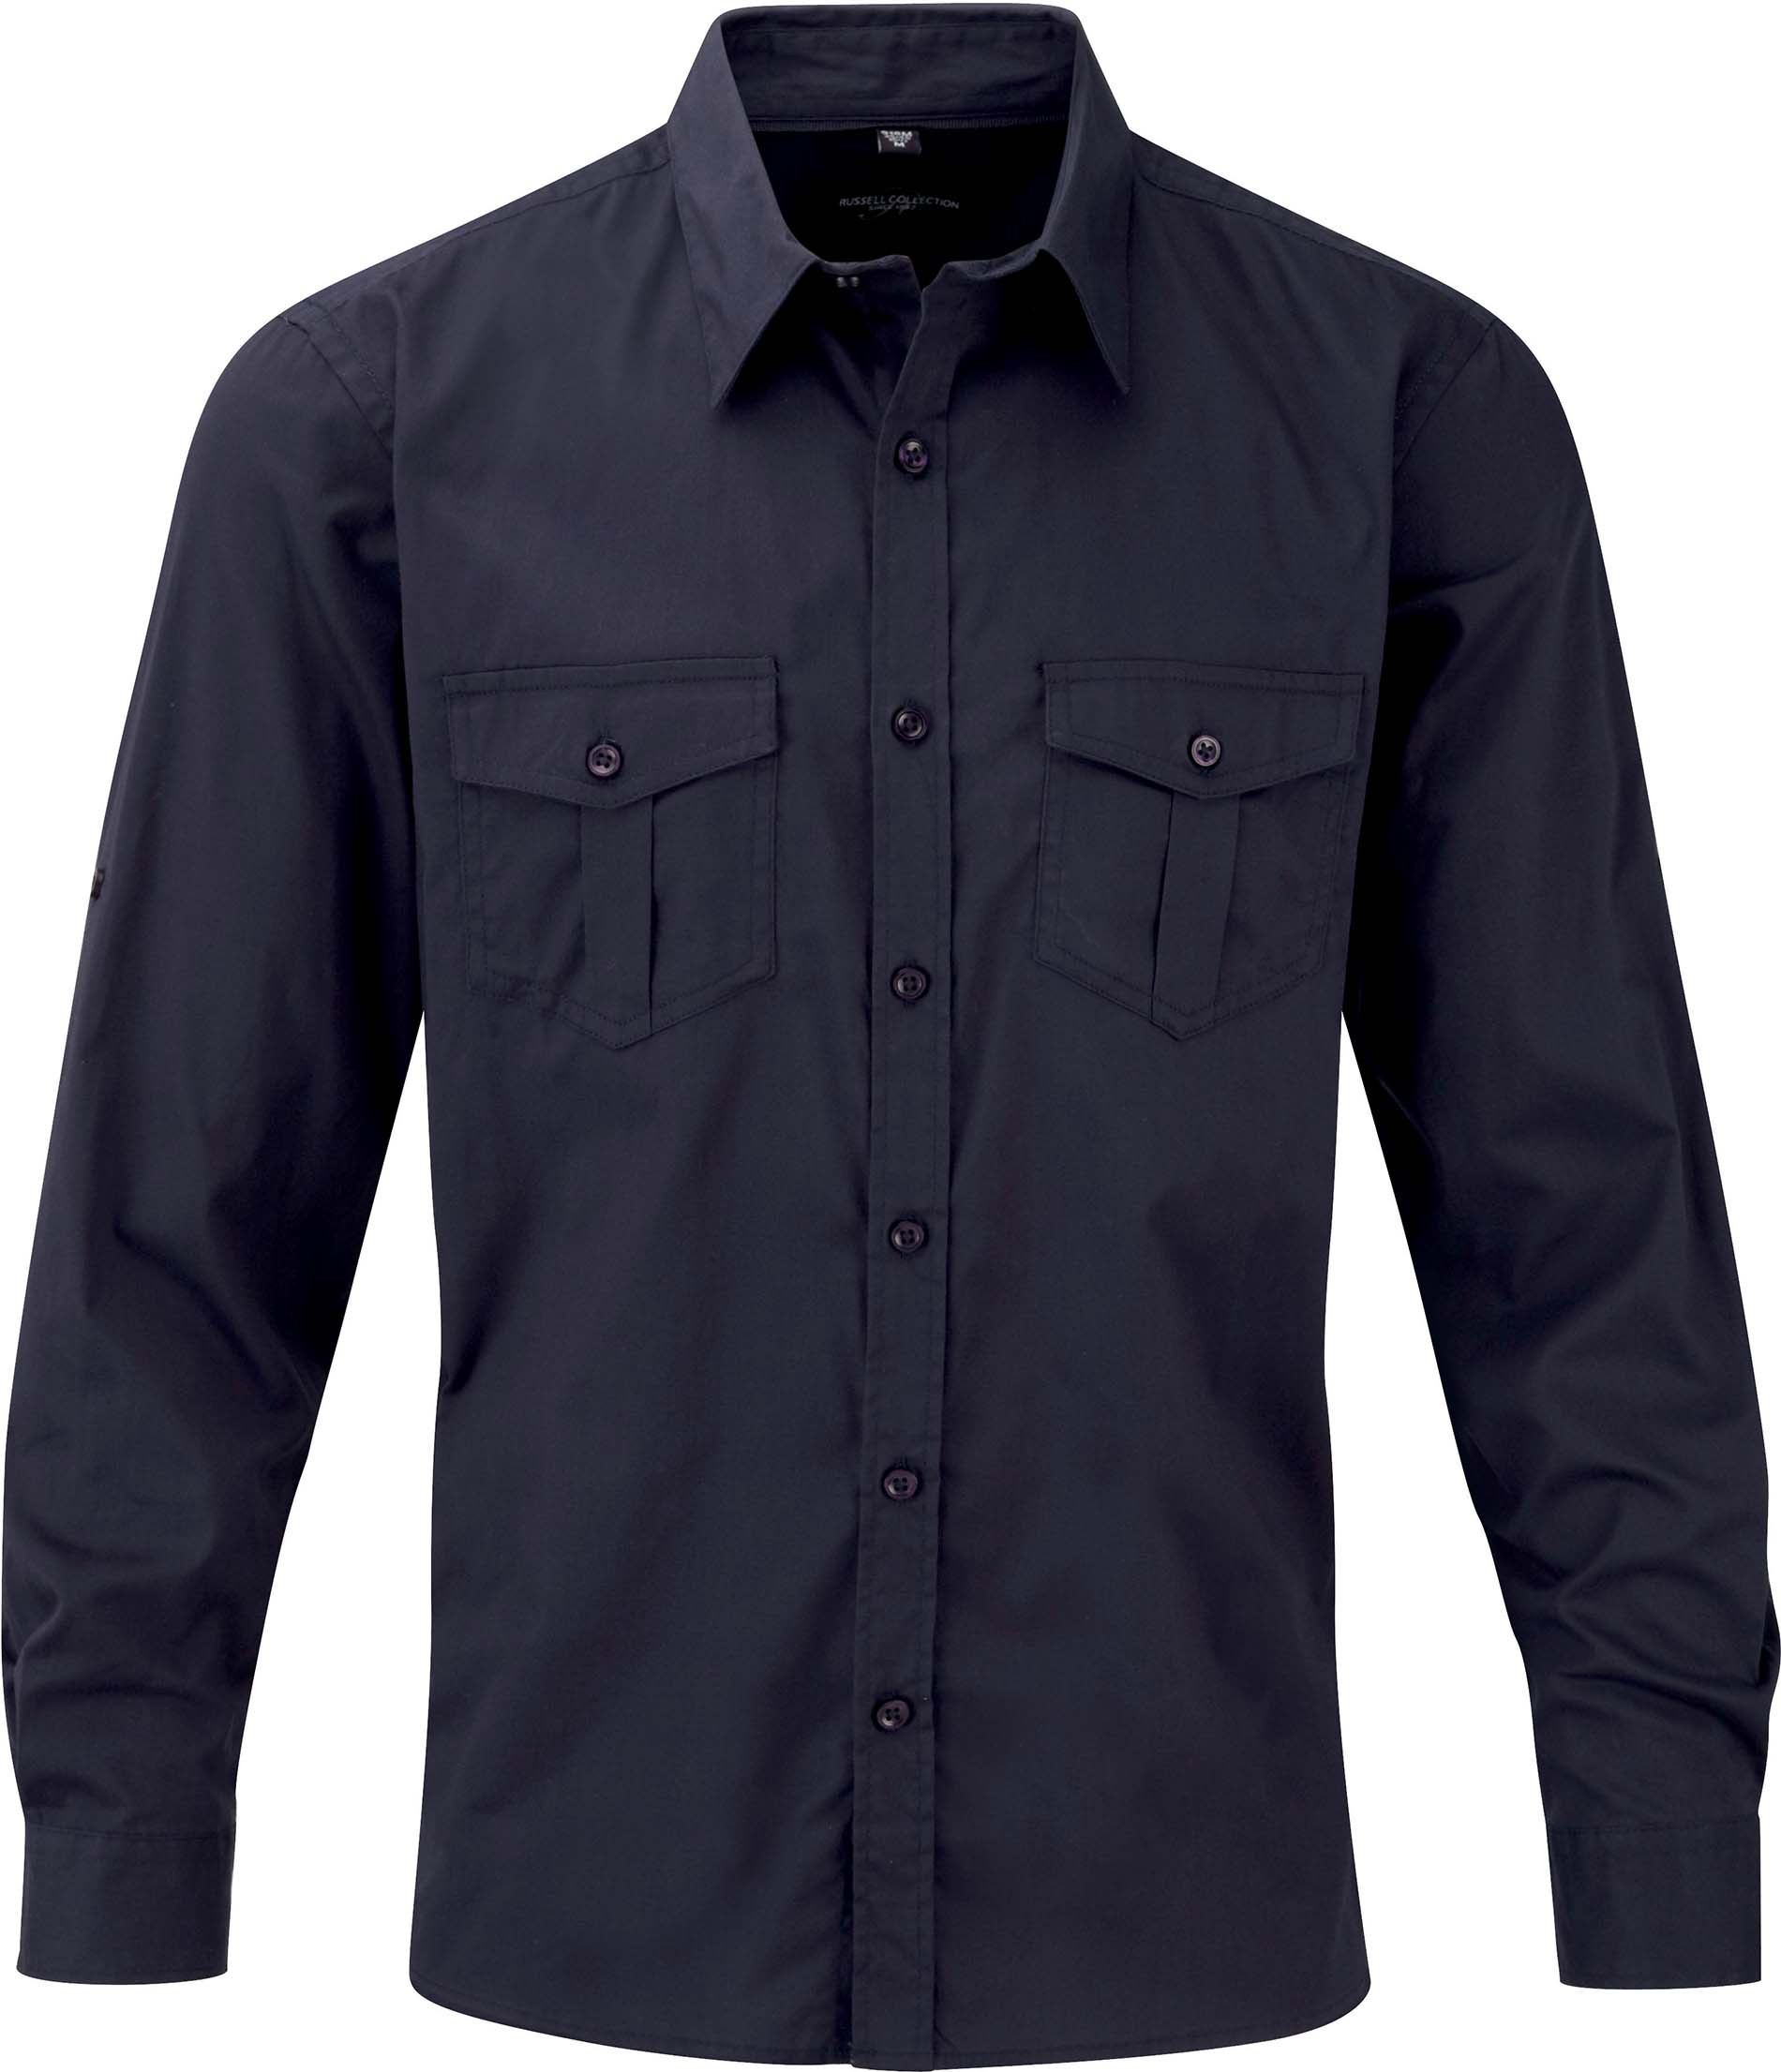 Russell CHEMISE HOMME MANCHES LONGUES TWILL ROLL-UP